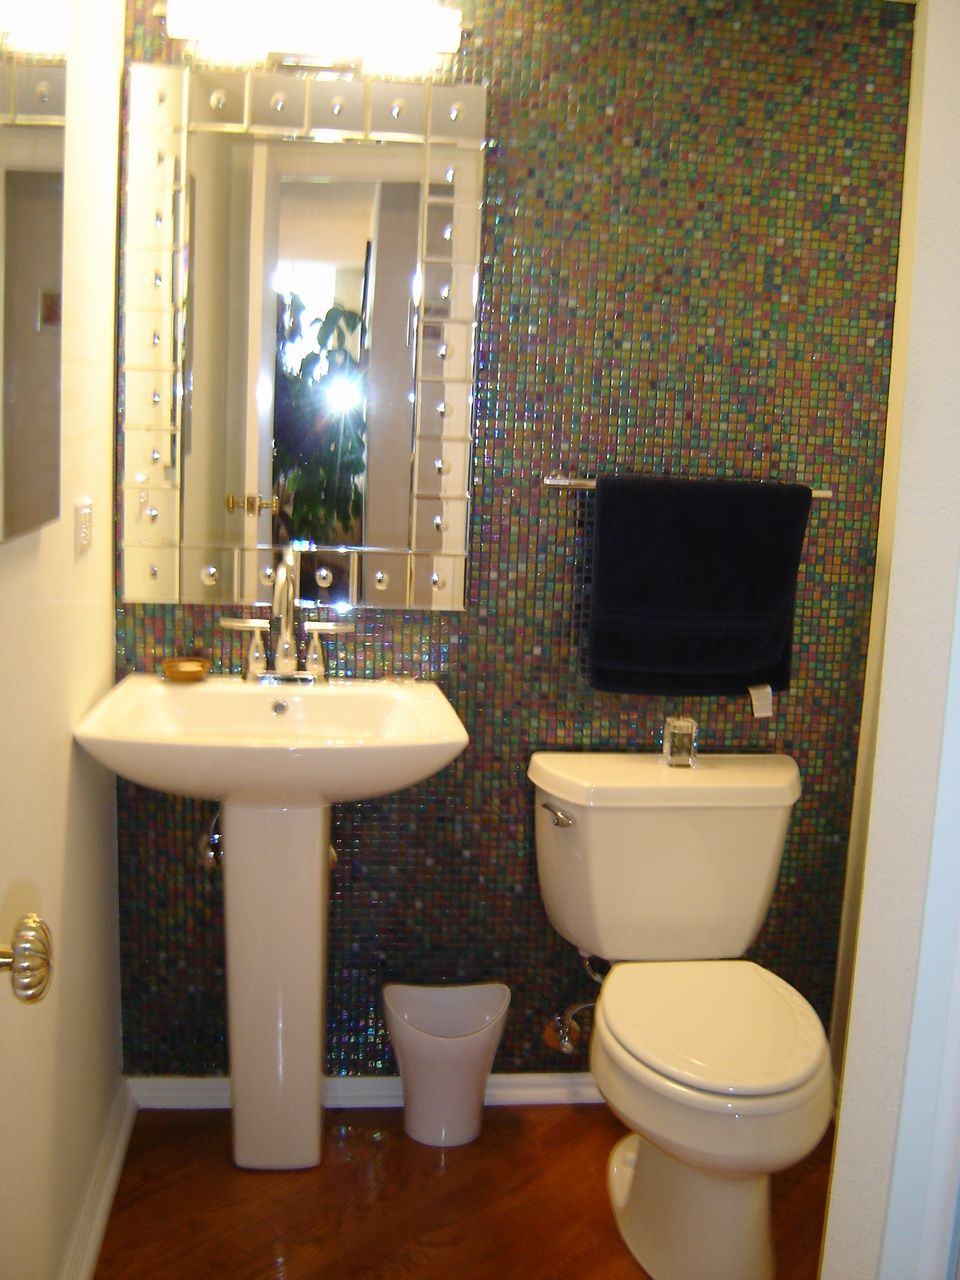 Luxury Great Powder Room Design Ideas With Modern Mirror On The Checkered Wall That Have A